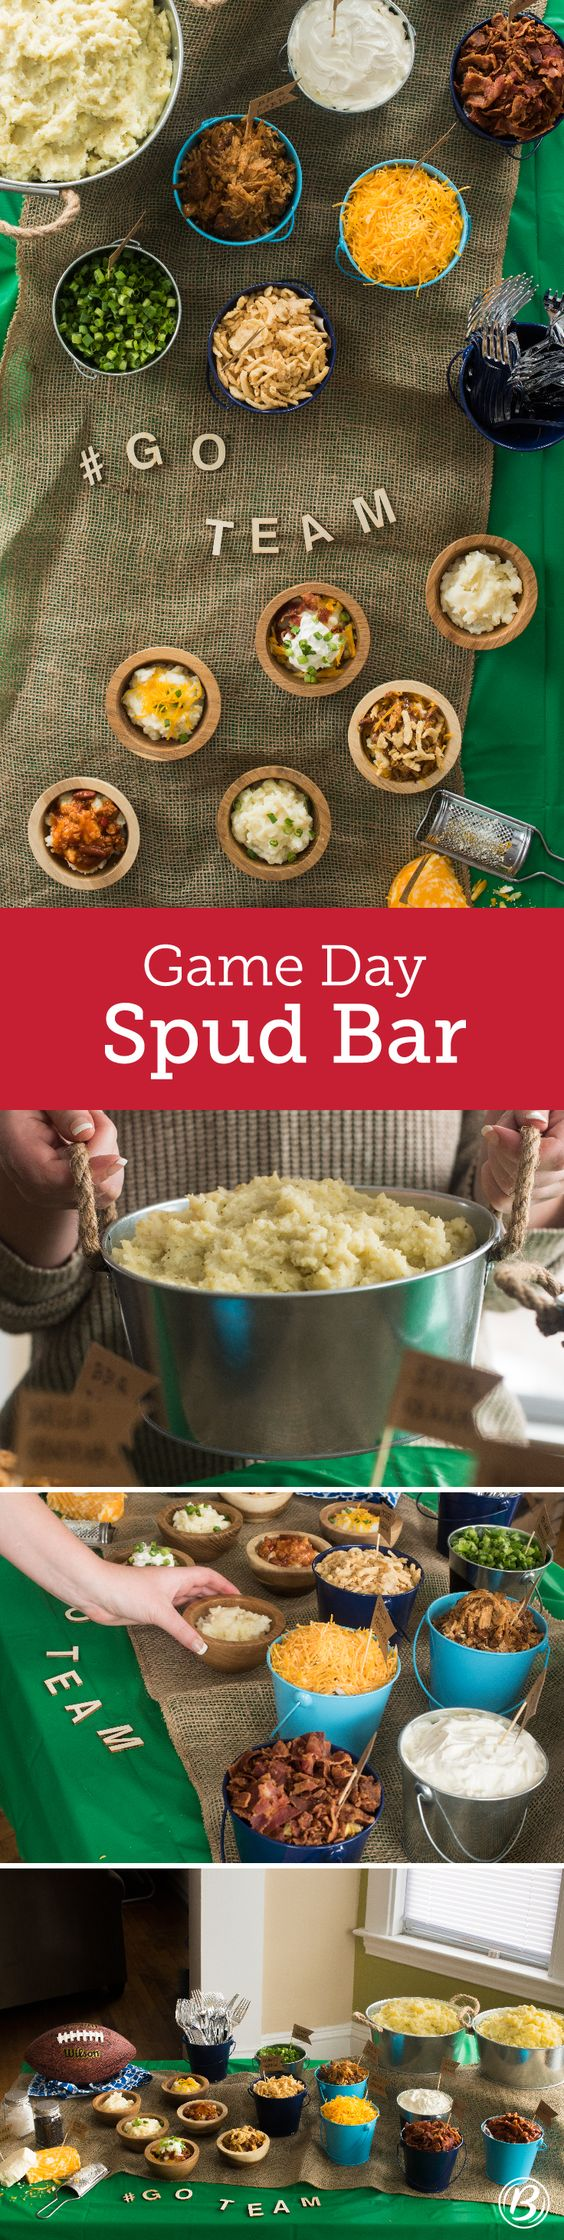 Whether you're a die-hard fan or just there for the party, football season brings fun, friendship and food together in one living room. With so many mouths to feed on big game day, the best option for keeping everyone happy is serving foods that guests can easily customize. Our go-to this year? A mashed potato bar!: